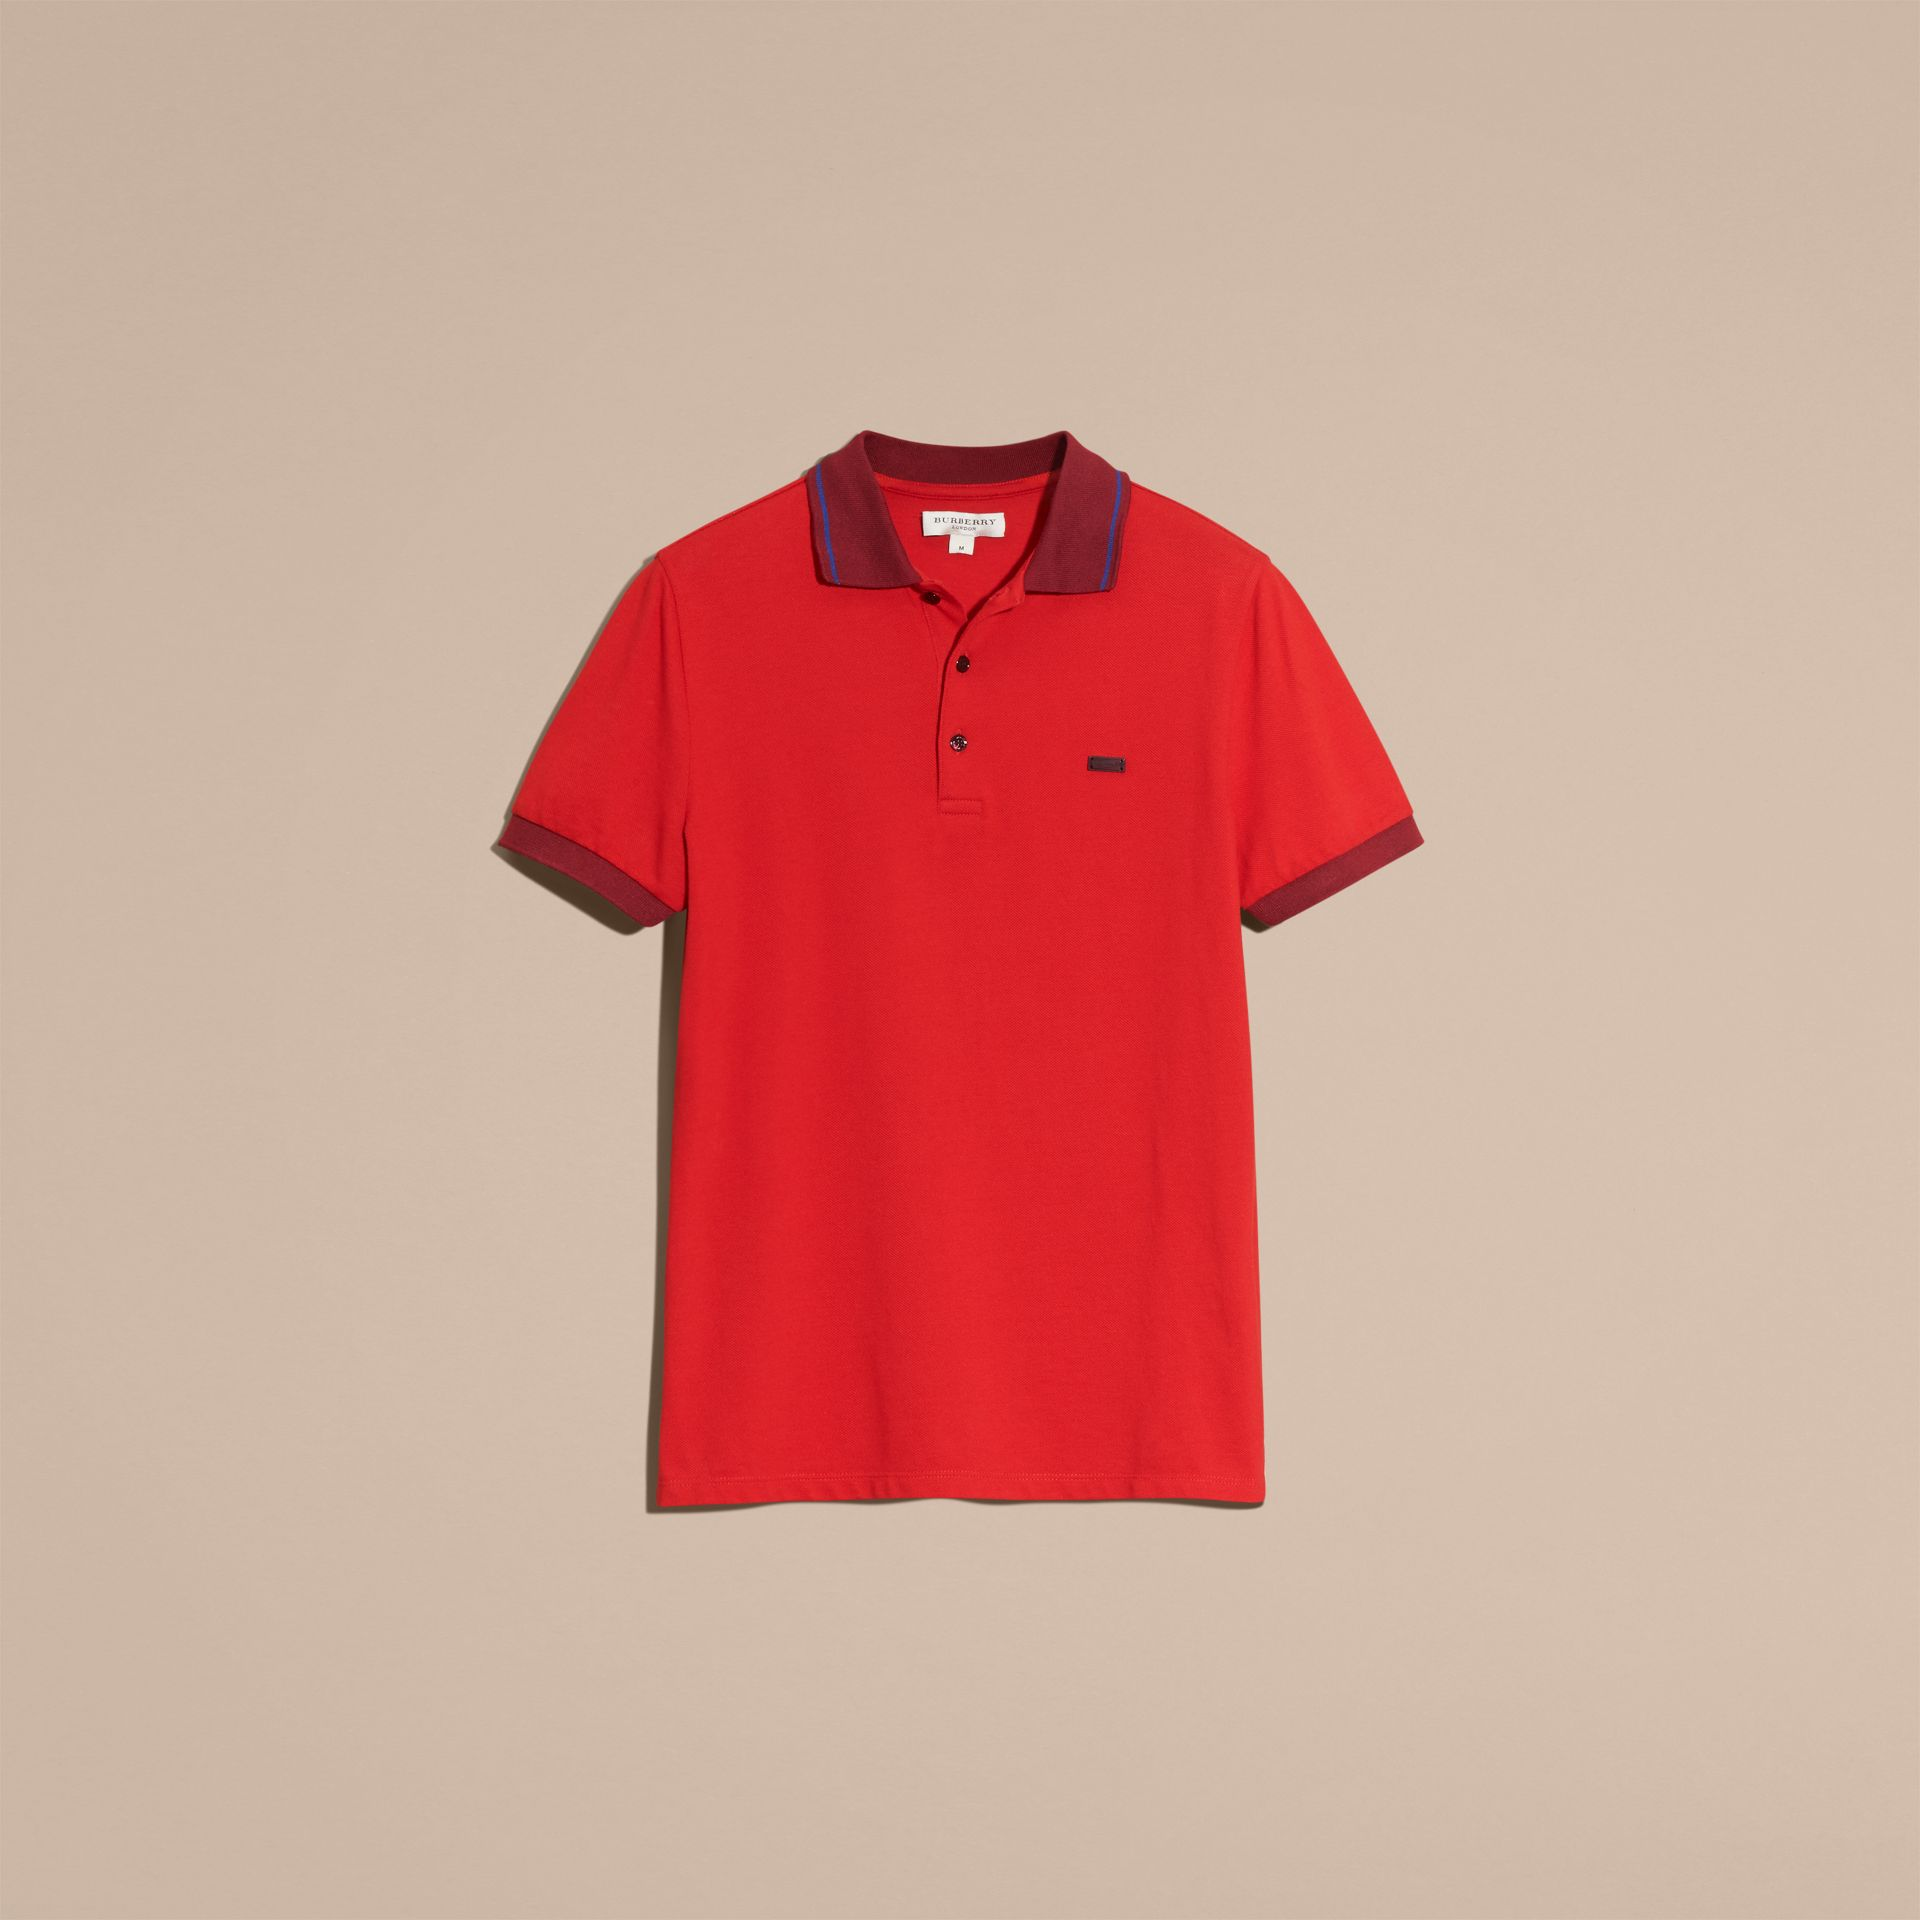 Union red/dark blue Contrast Trim Cotton Piqué Polo Shirt Union Red/dark Blue - gallery image 4